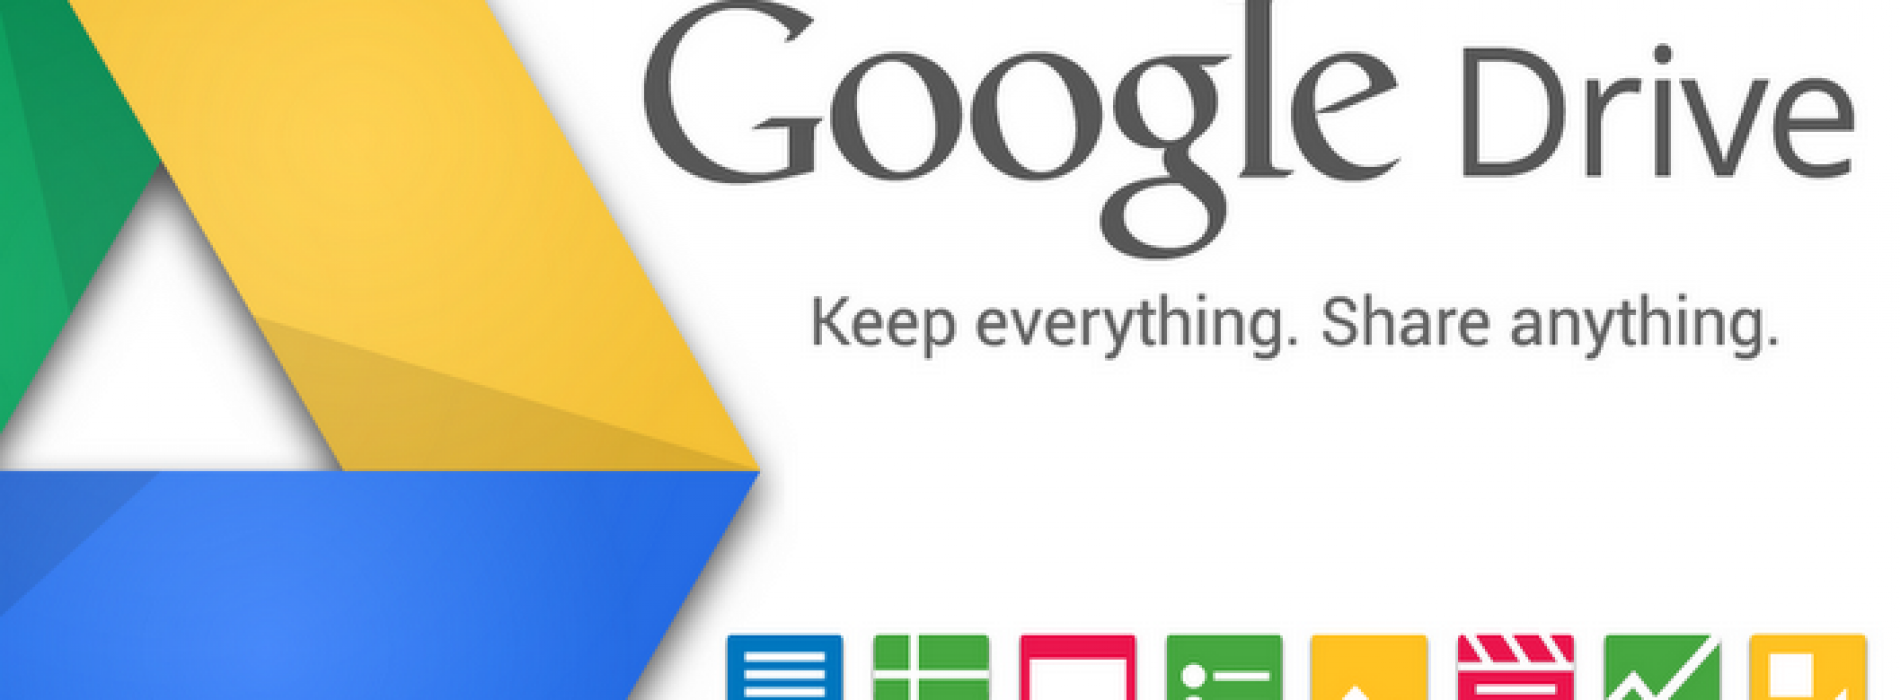 Get 10GB of Google Drive storage for free